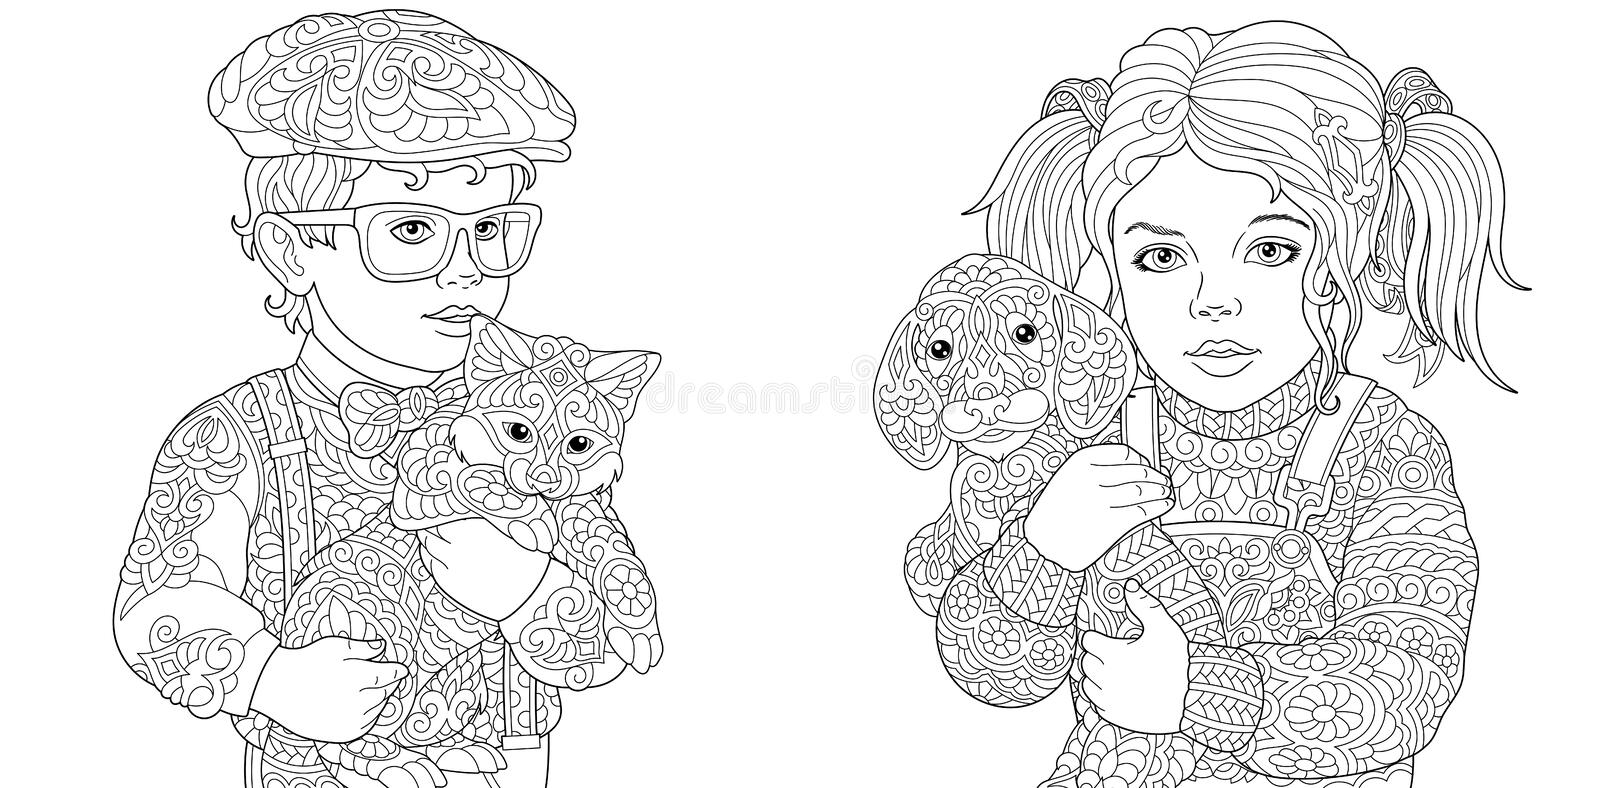 Coloring Pages. Coloring Book for adults. Colouring pictures with boy and girl holding cat and dog drawn in zentangle style. stock image